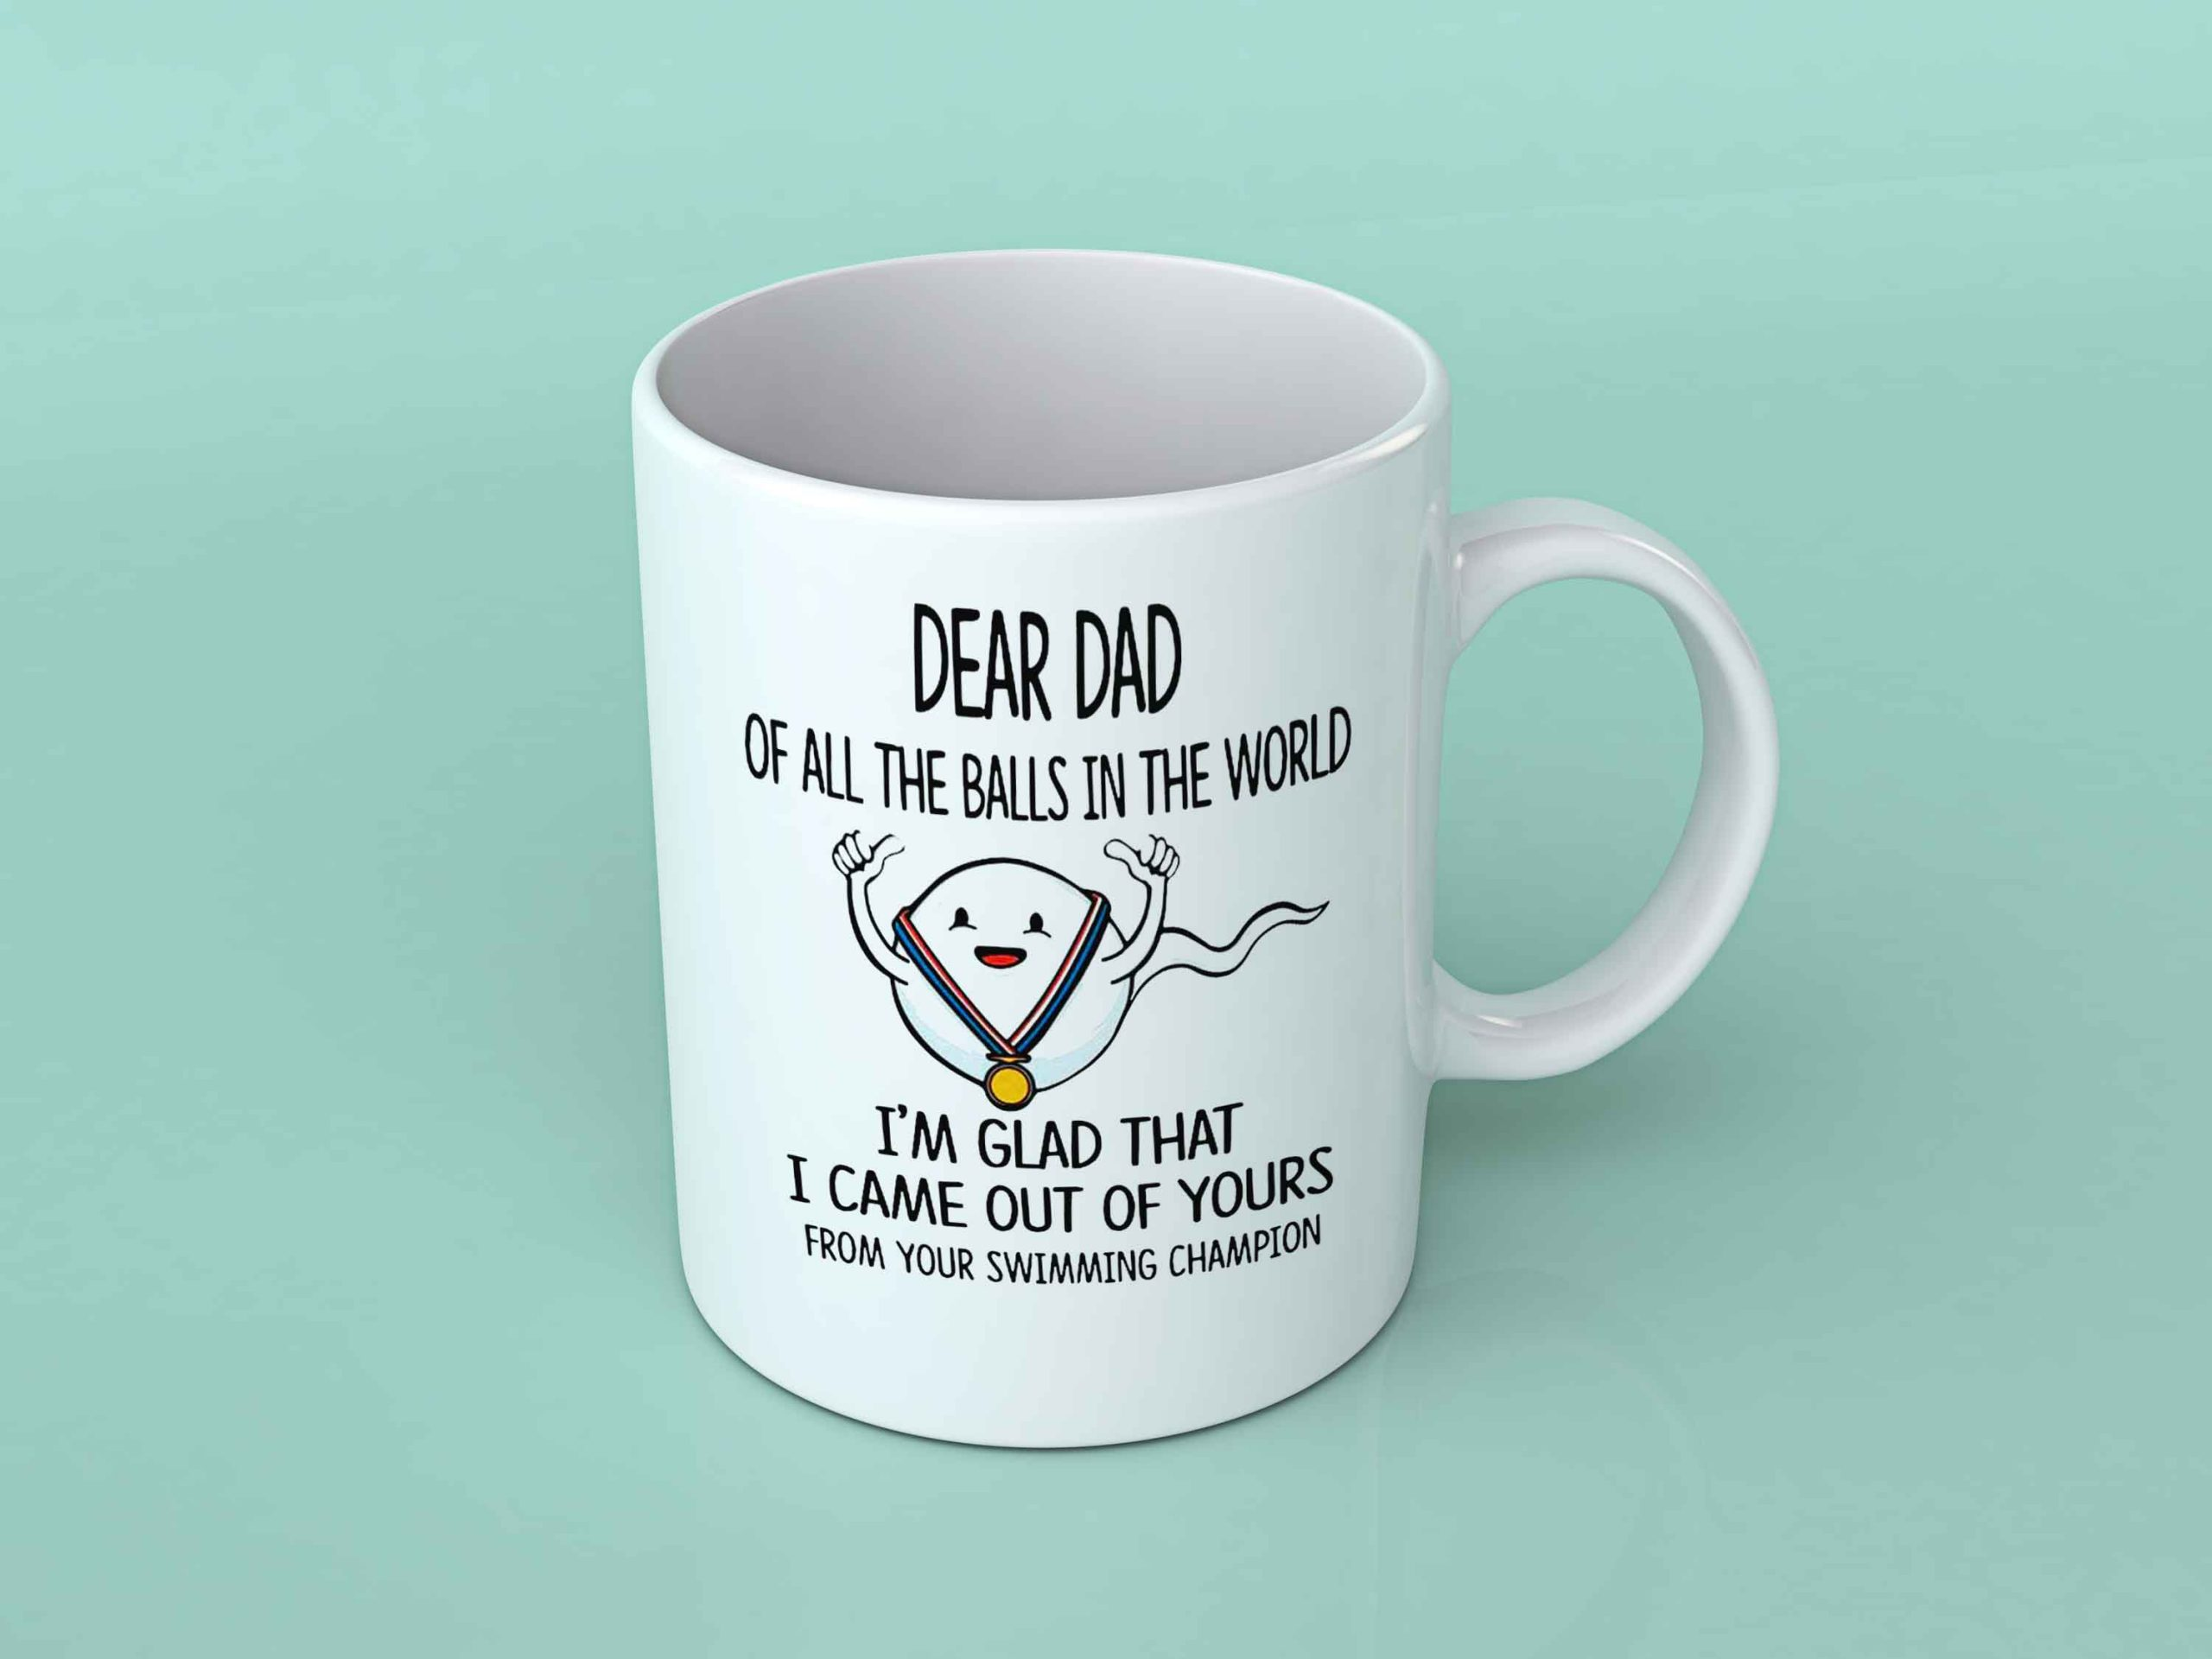 Dear dad of all the balls in the world Coffee mug